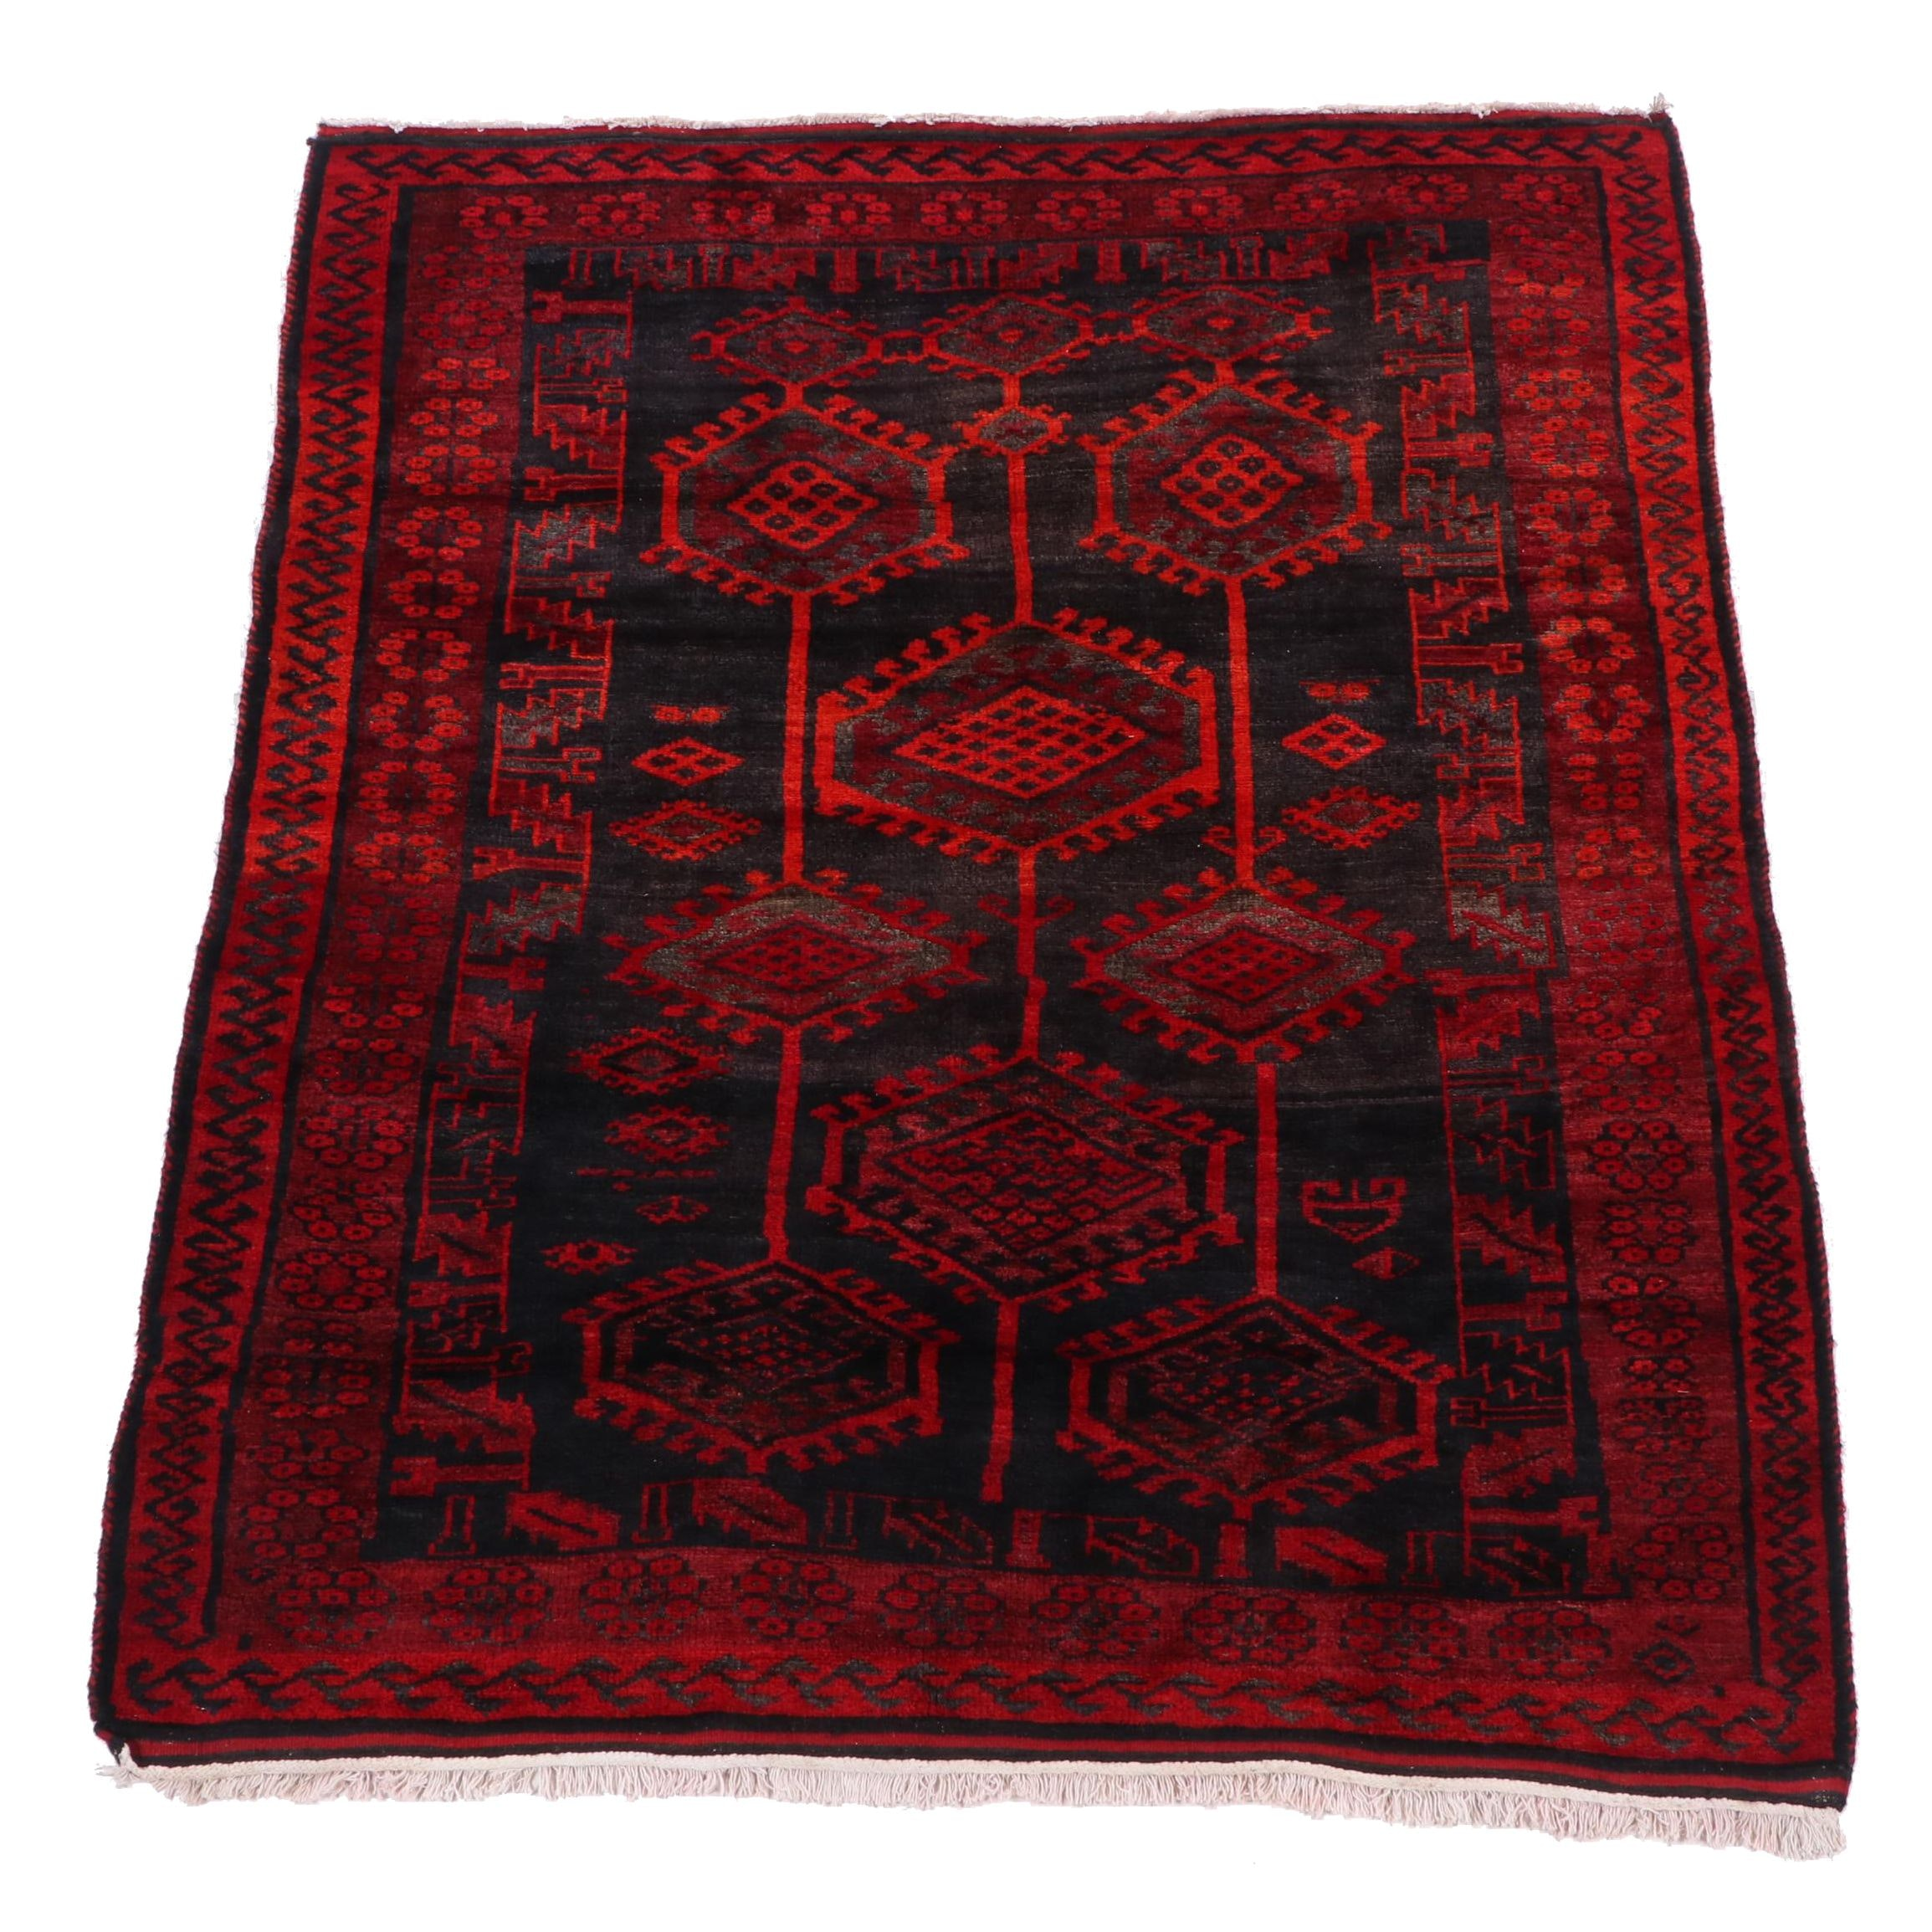 Hand-Knotted Russian Turkmen Wool Rug